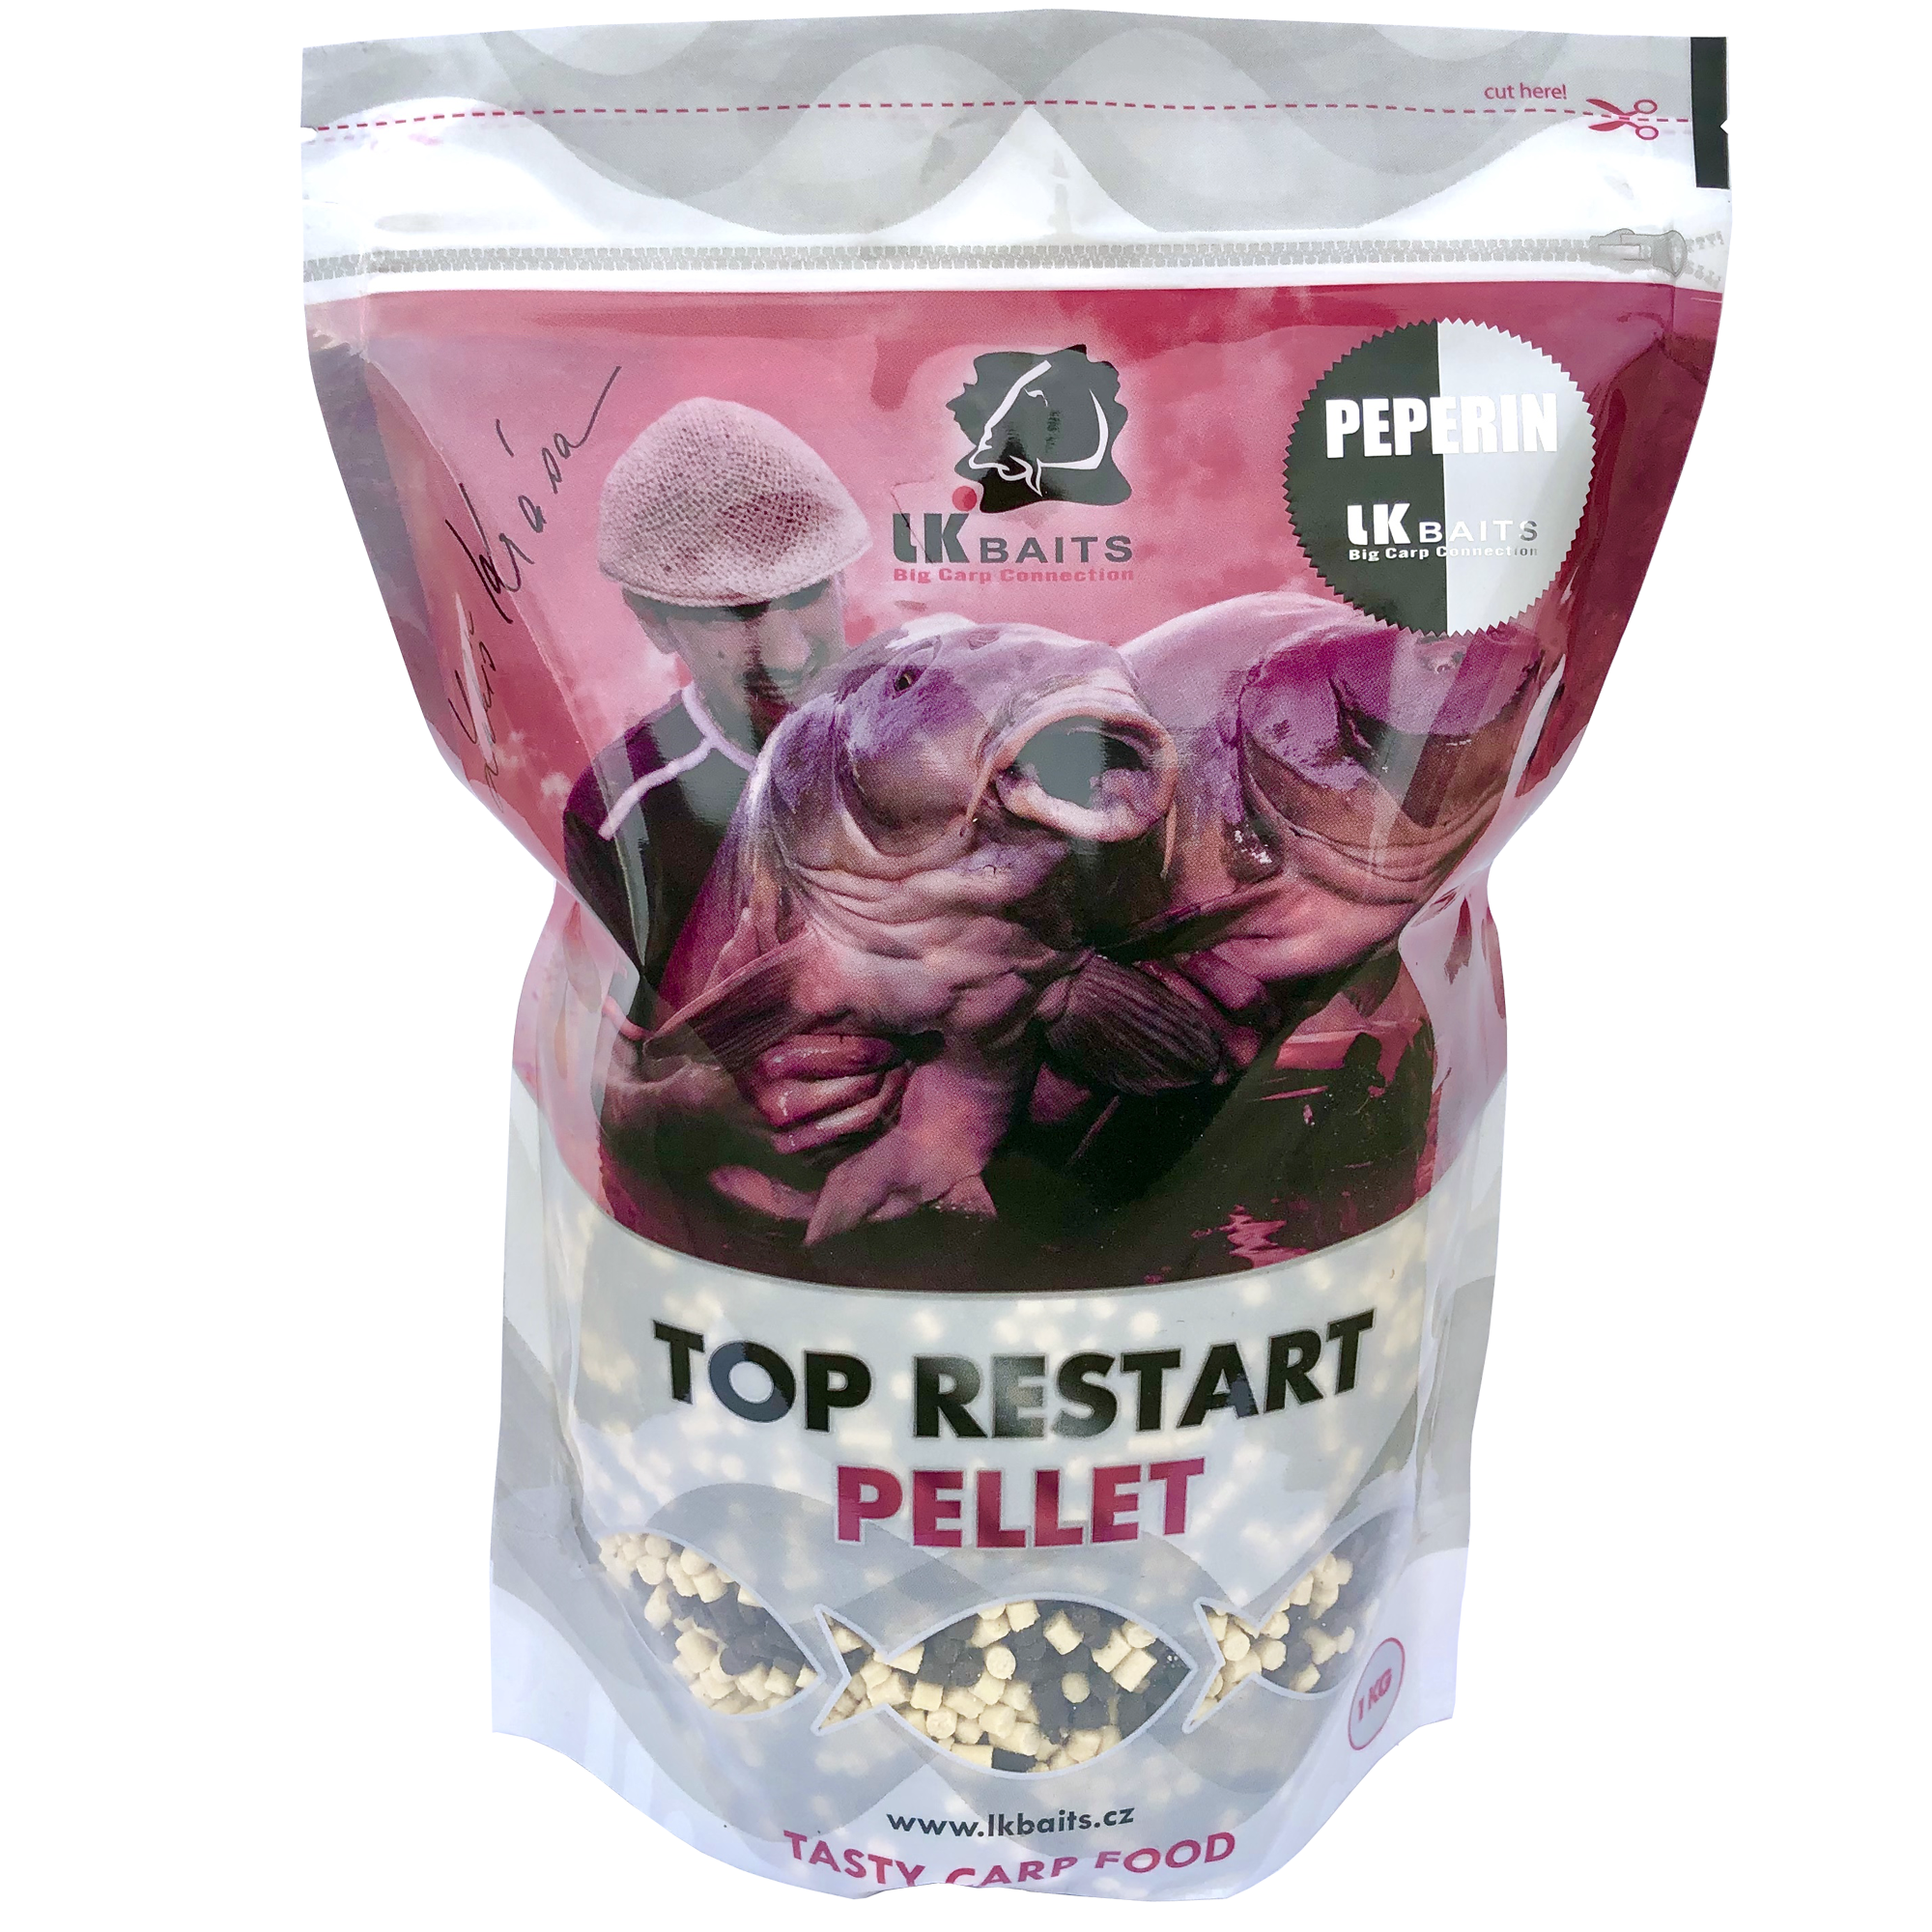 LK Baits Top ReStart Pellets Peperin 1kg, 4mm